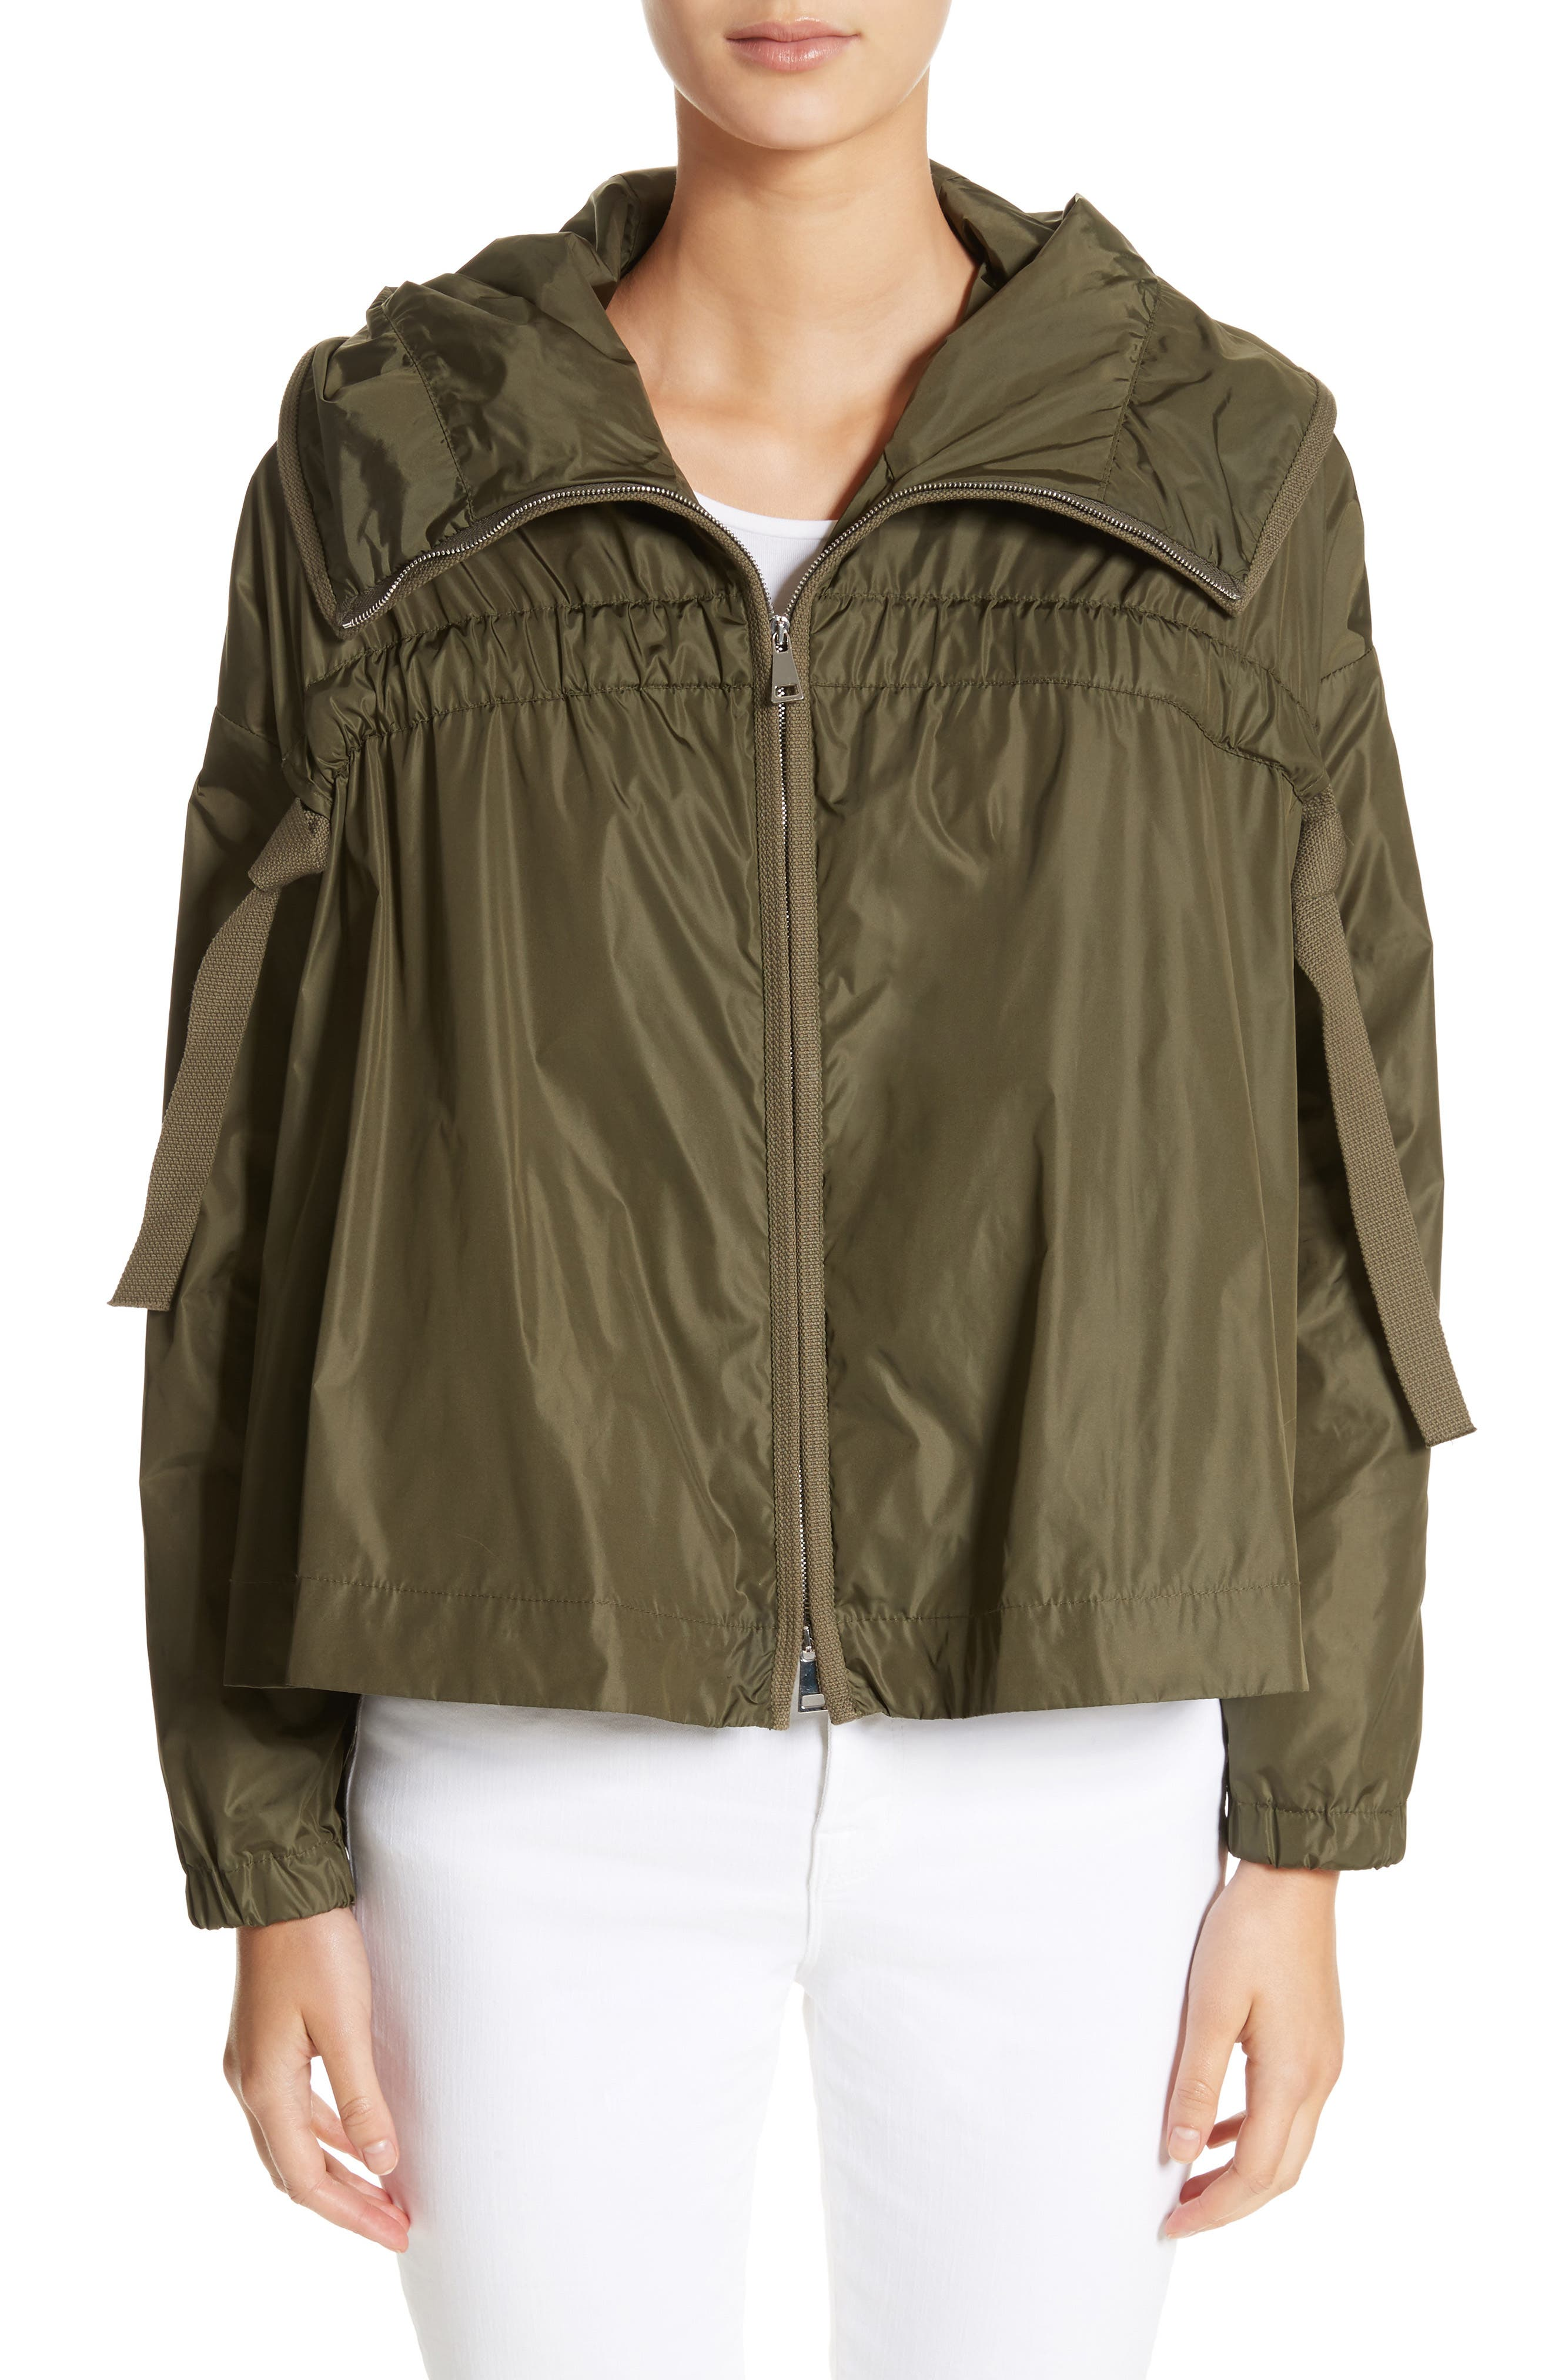 Lune Water Resistant Swing Jacket,                             Main thumbnail 1, color,                             Olive